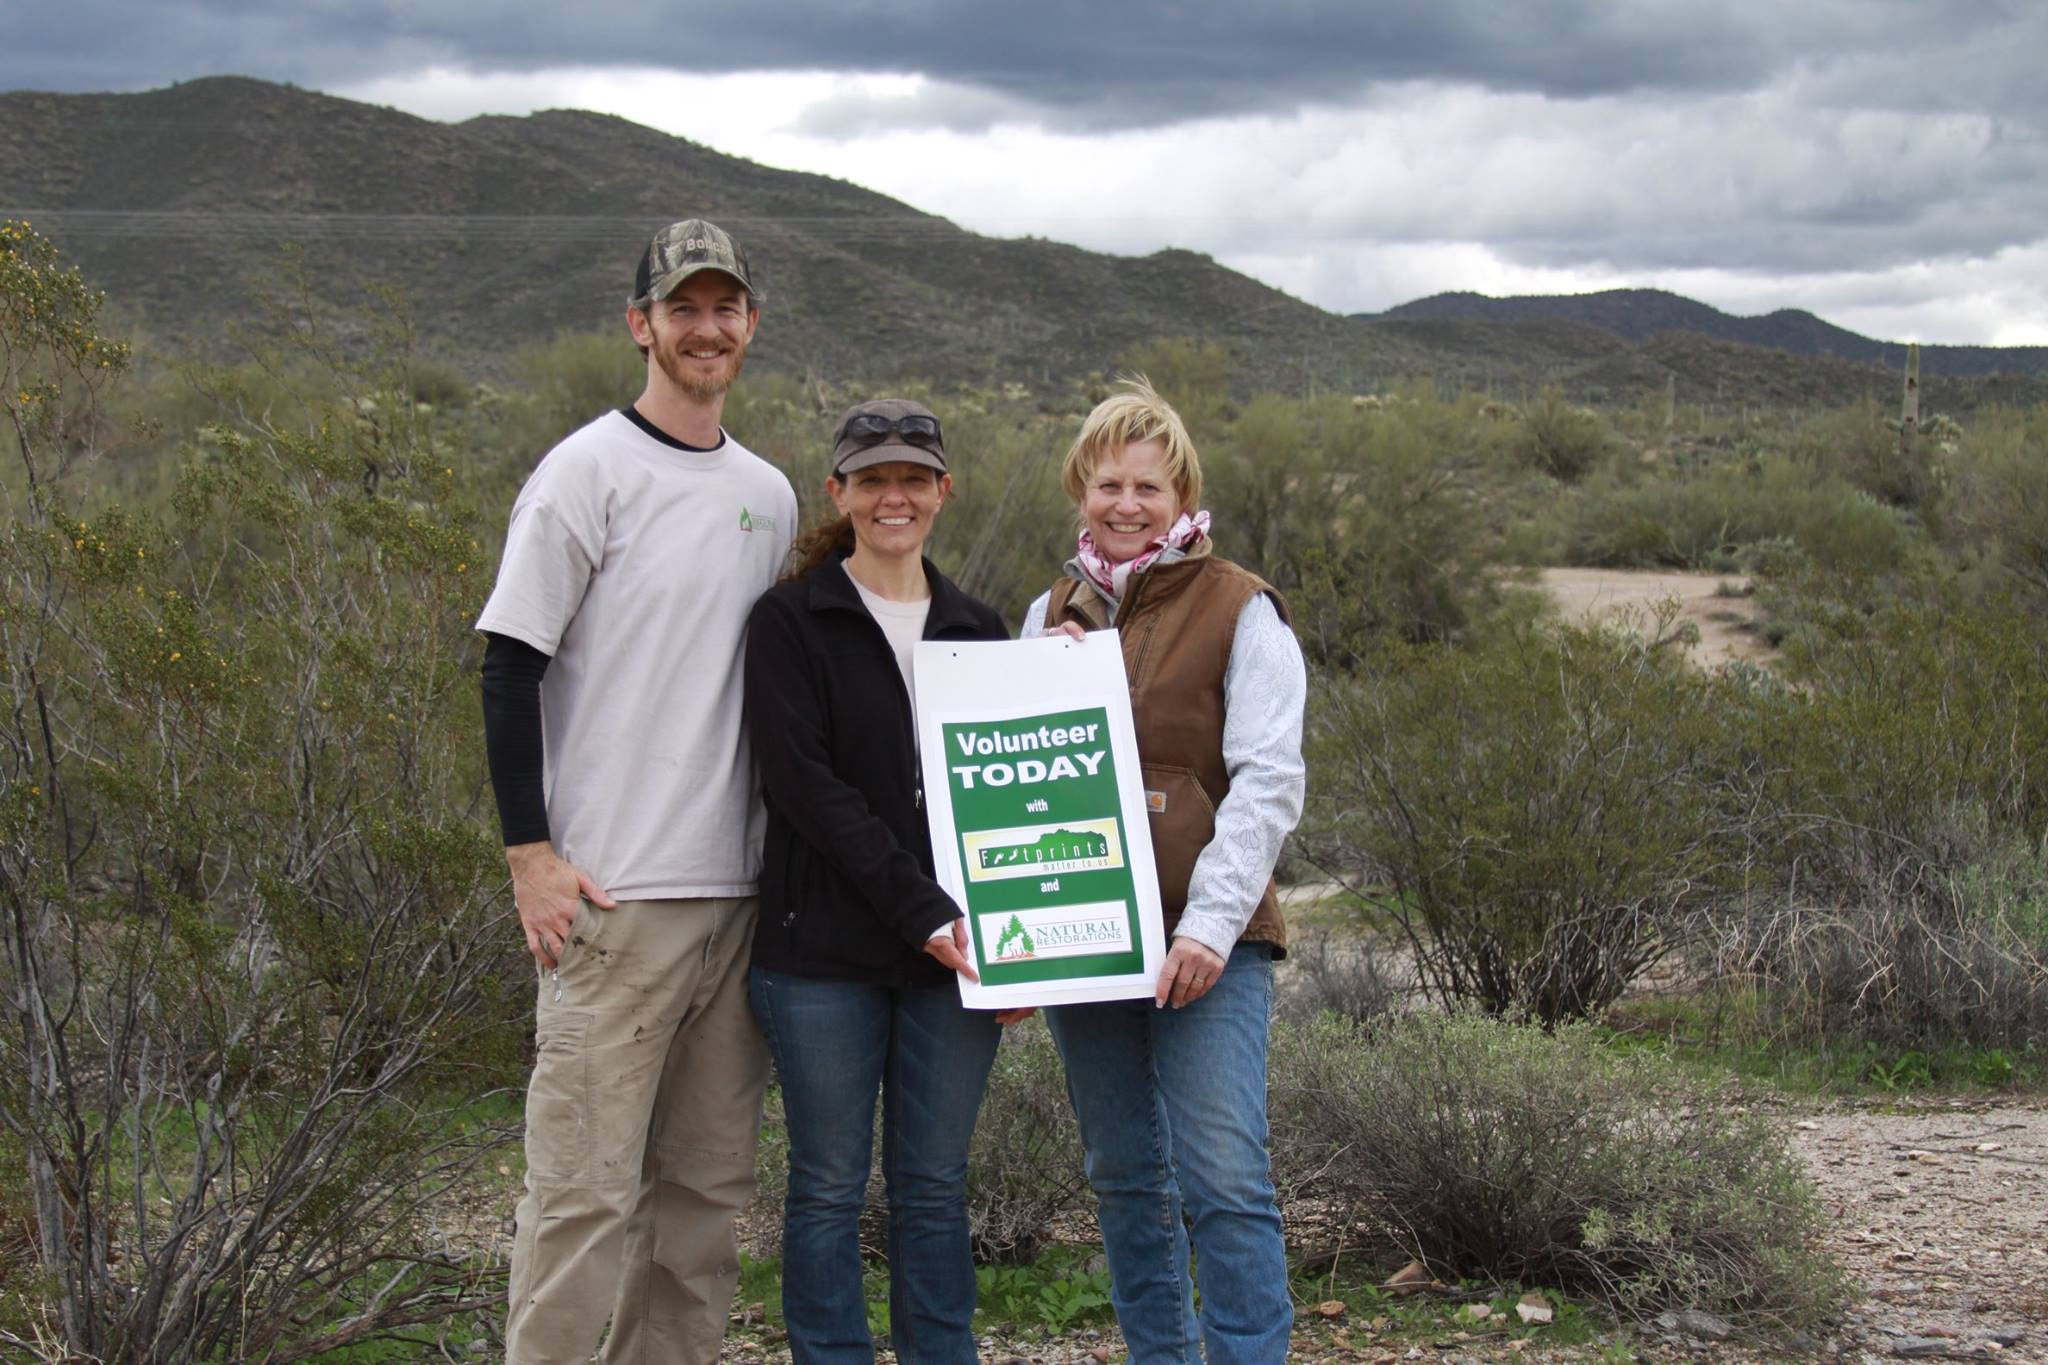 Justin & Nicole Corey from Natural Restorations and Sue Schaffer from Footprints Matter to Us